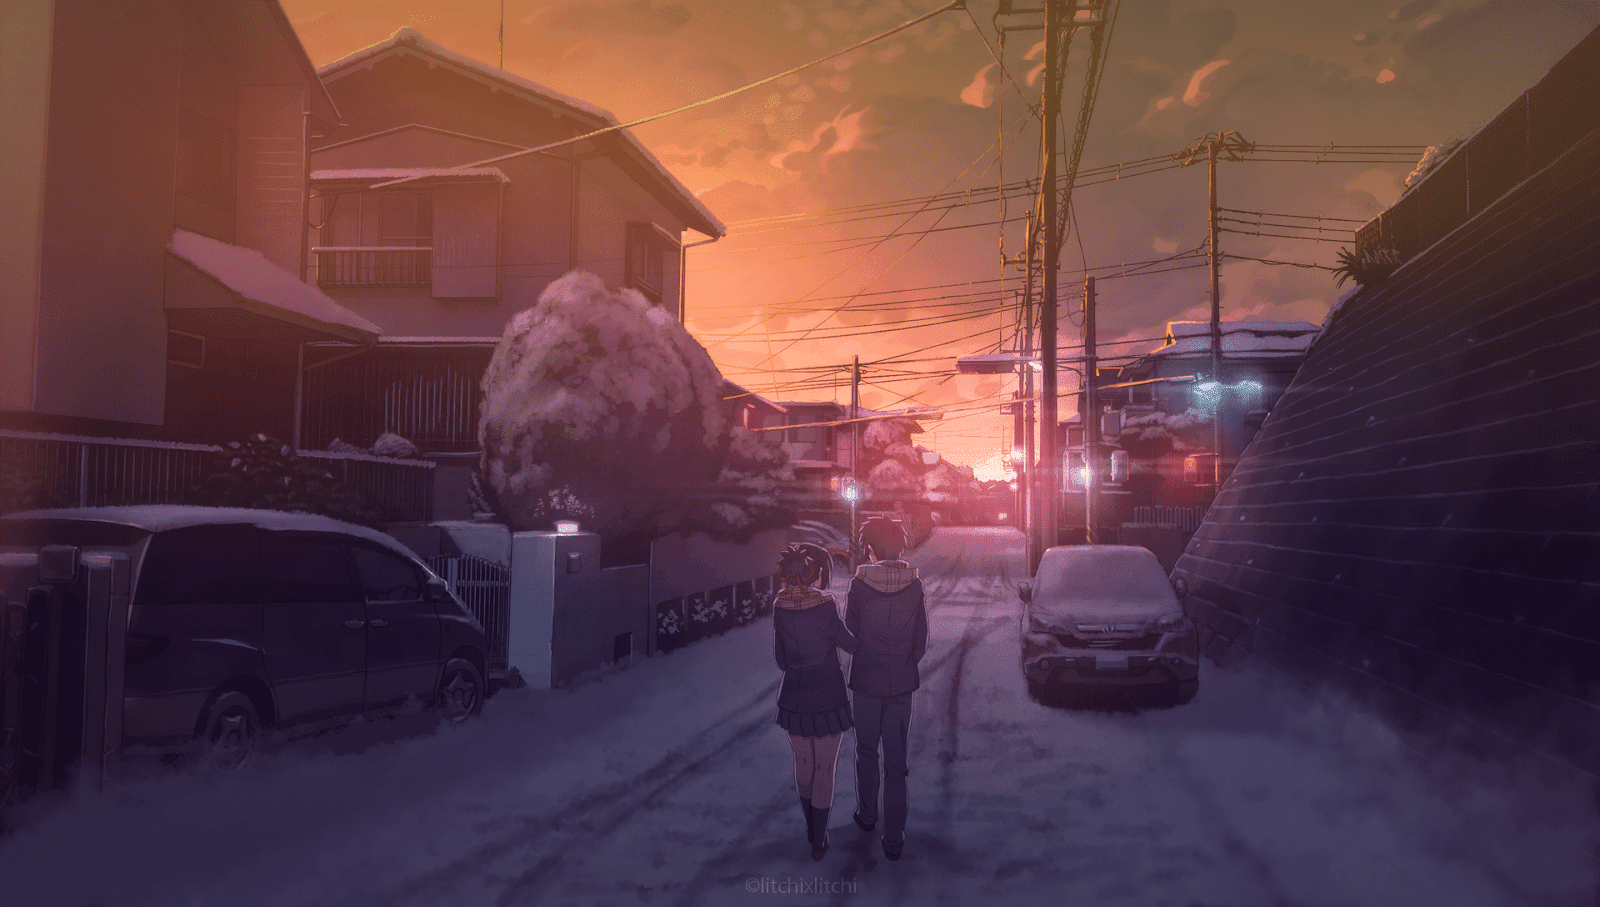 AowVN%2B%252814%2529 - [ Hình Nền ] Anime Your Name. - Kimi no Nawa full HD cực đẹp | Anime Wallpaper